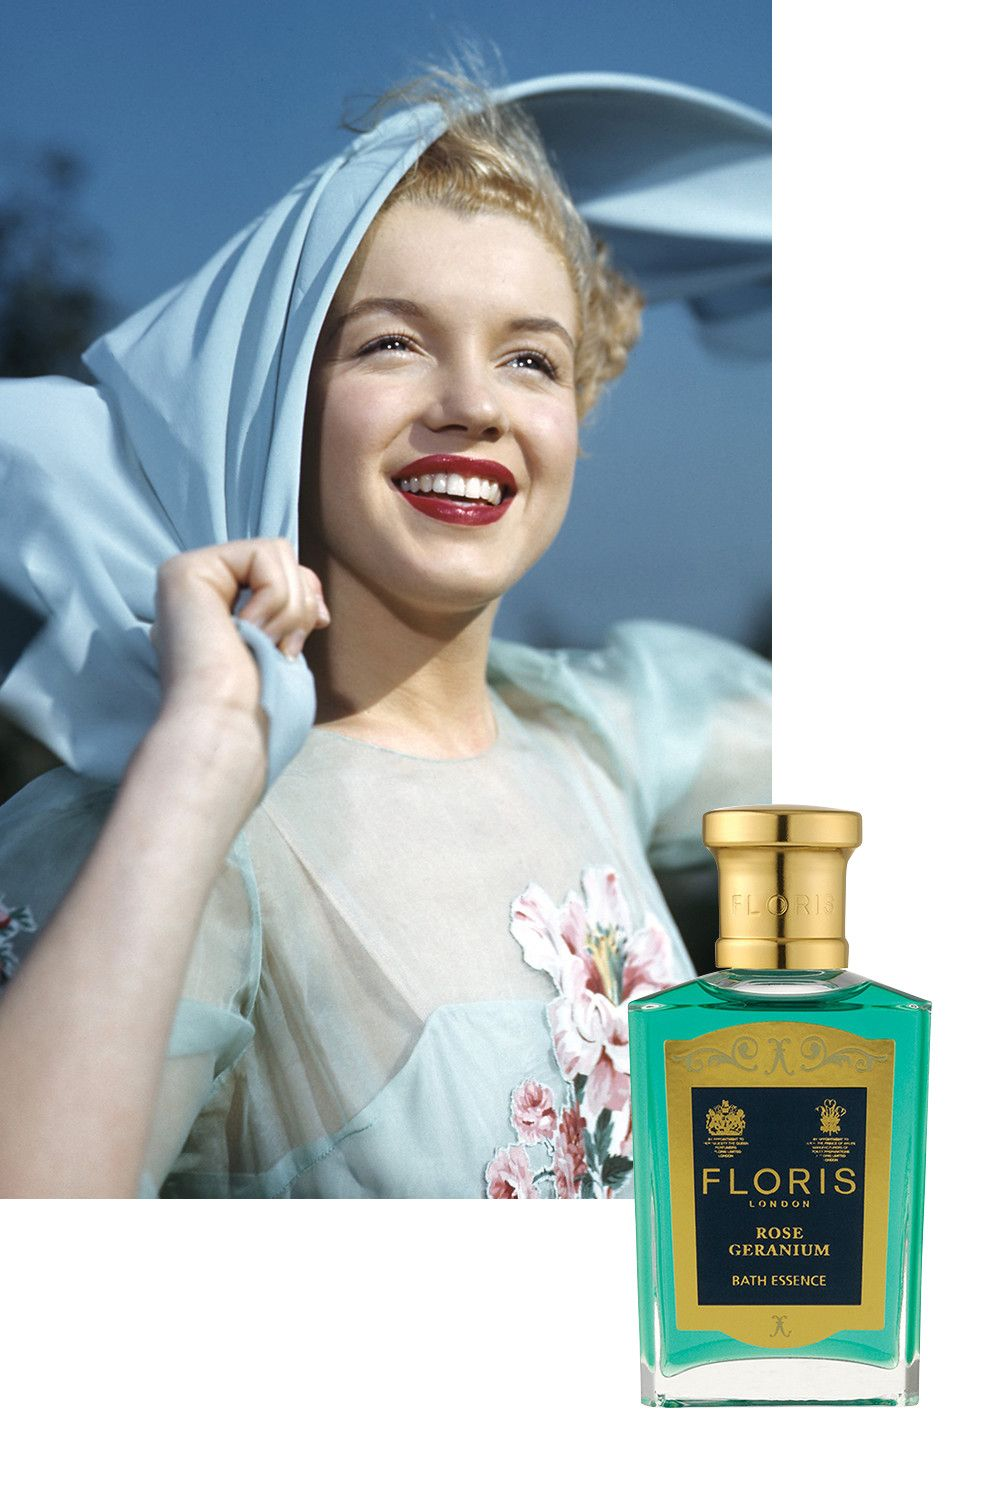 "<p>Like millions of other women, Monroe was a fan of Chanel No 5. However, in 2002, it was revealed that she also had a secret penchant for Floris Rose Geranium. The eau de toilette was delivered in bulk to her at the Beverly Hills Hotel under a cloak and dagger alias while she filmed <i data-redactor-tag=""i"">Some Like It Hot</i>. Featuring notes of rose, geranium, citronella and sandalwood, the British eau de toilette has been discontinued and its scent is now only available as a bath essence.</p>"